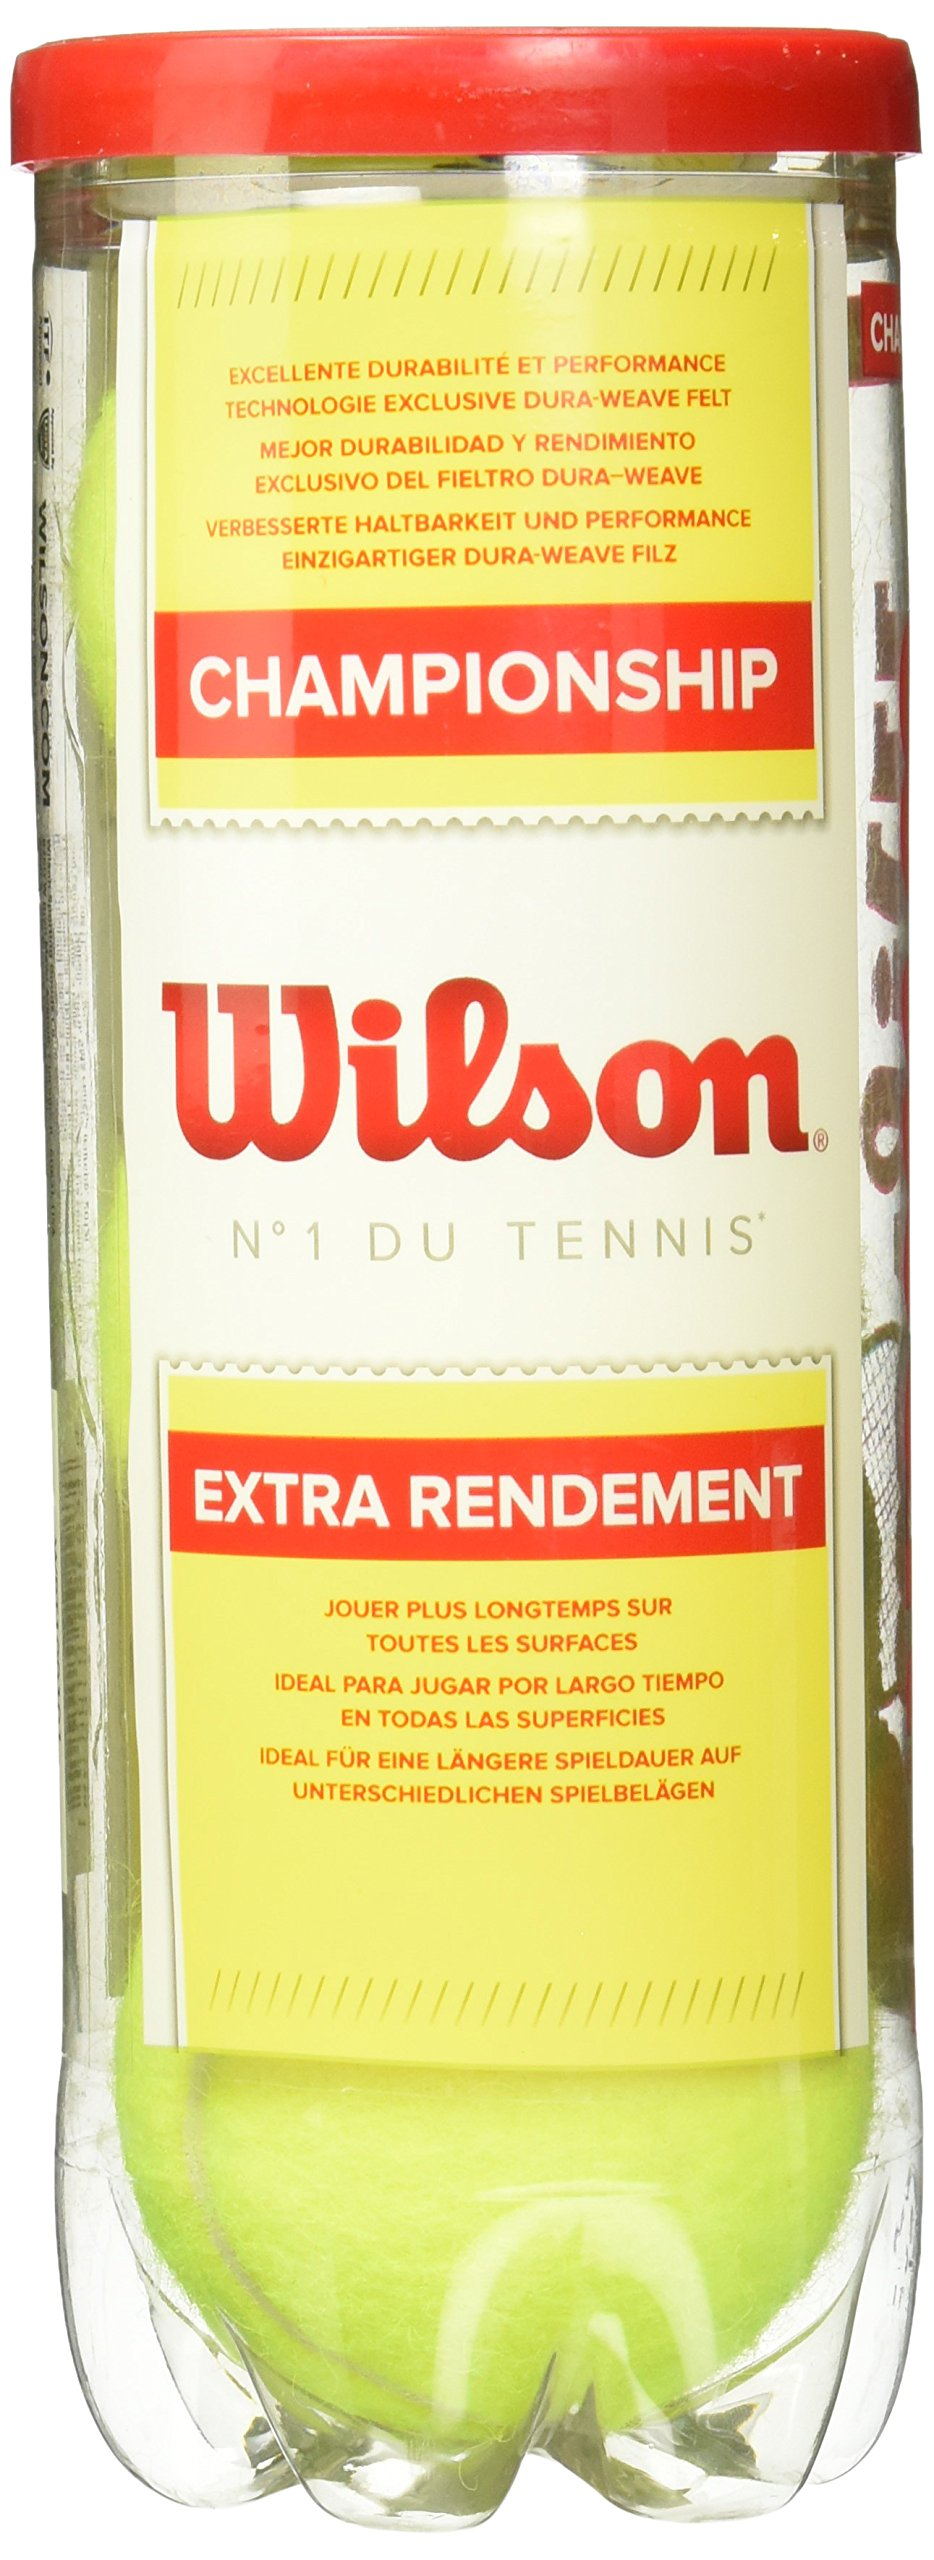 Wilson Championship Tennis Balls - Can (CAN) by Wilson (Image #3)